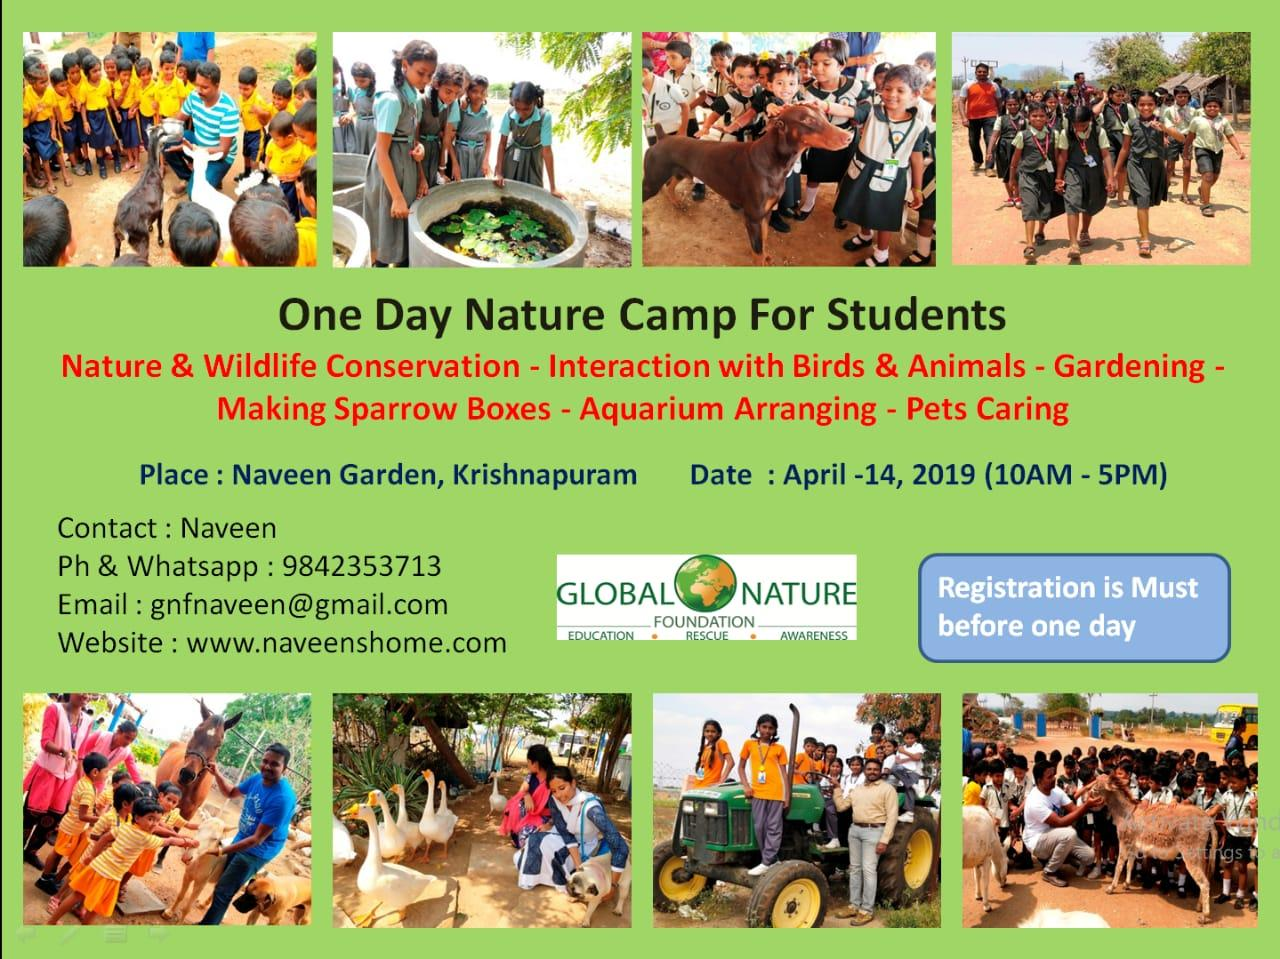 One Day Nature Camp For Students